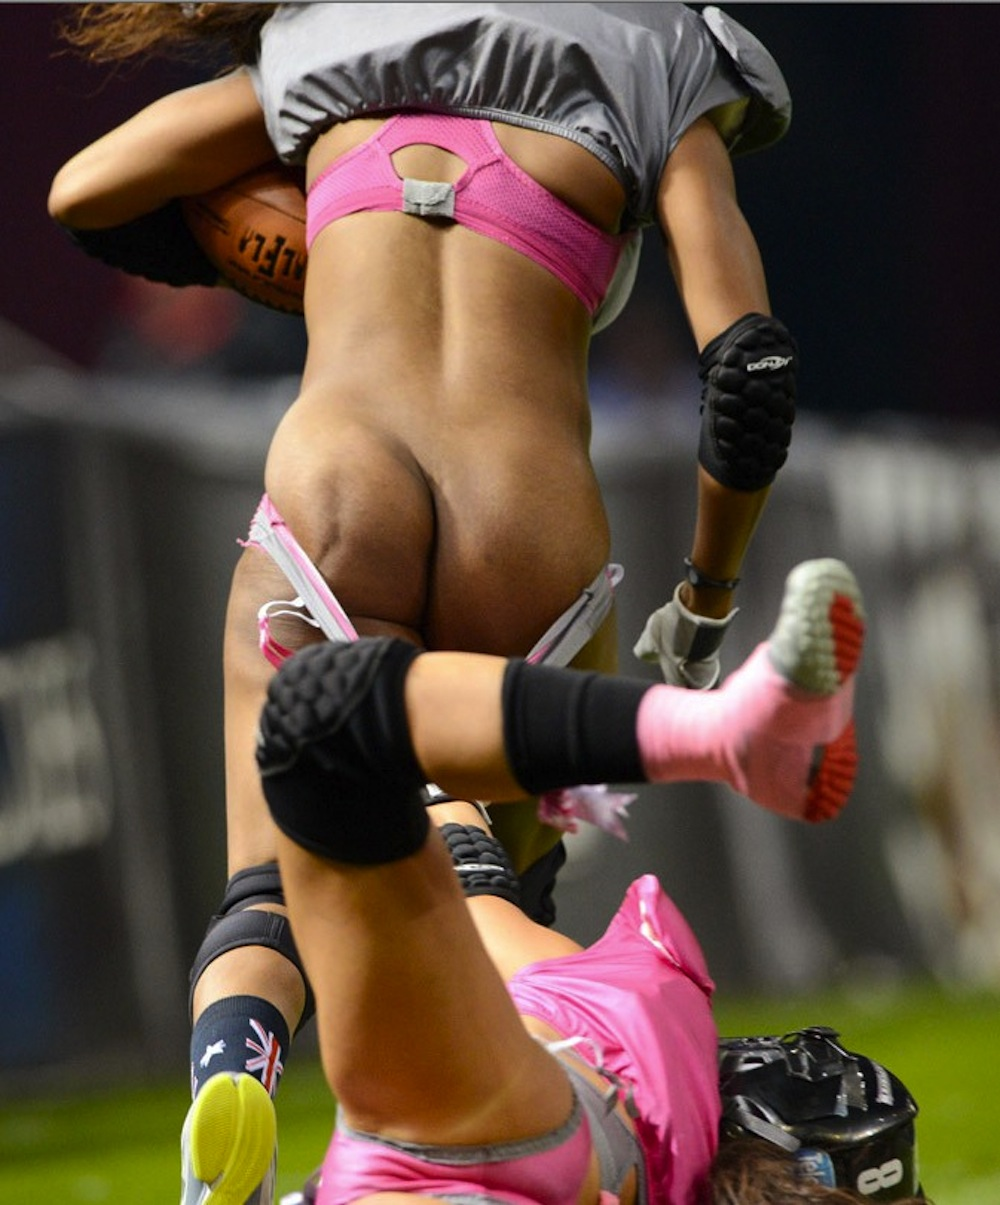 Lingerie football wardrobe malfunctions